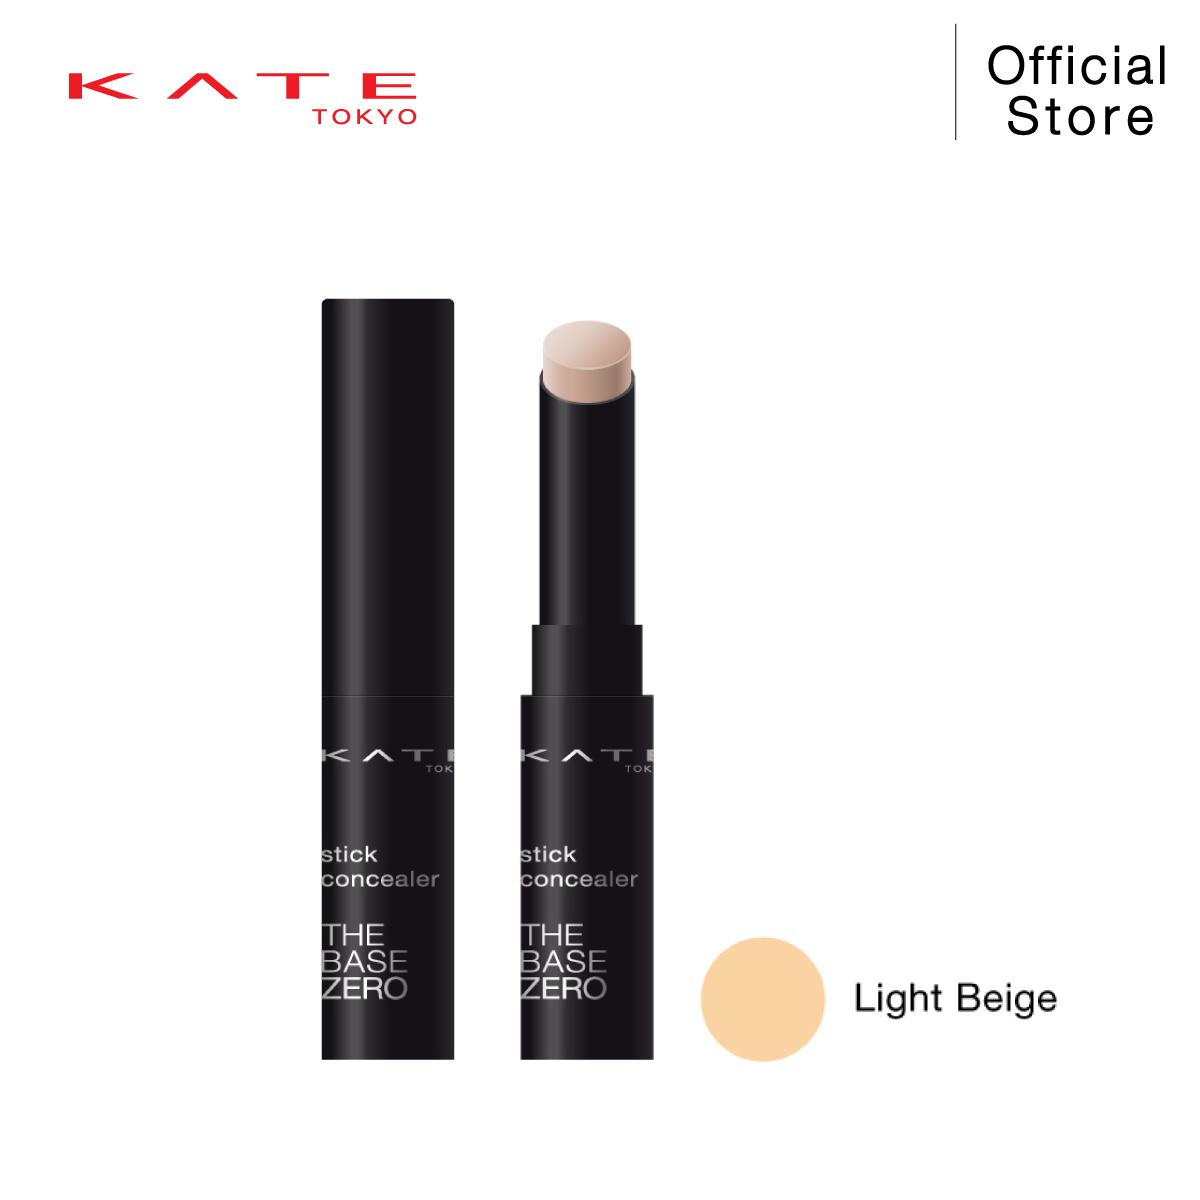 KATE STICK CONCEALER A LIGHT BEIGE